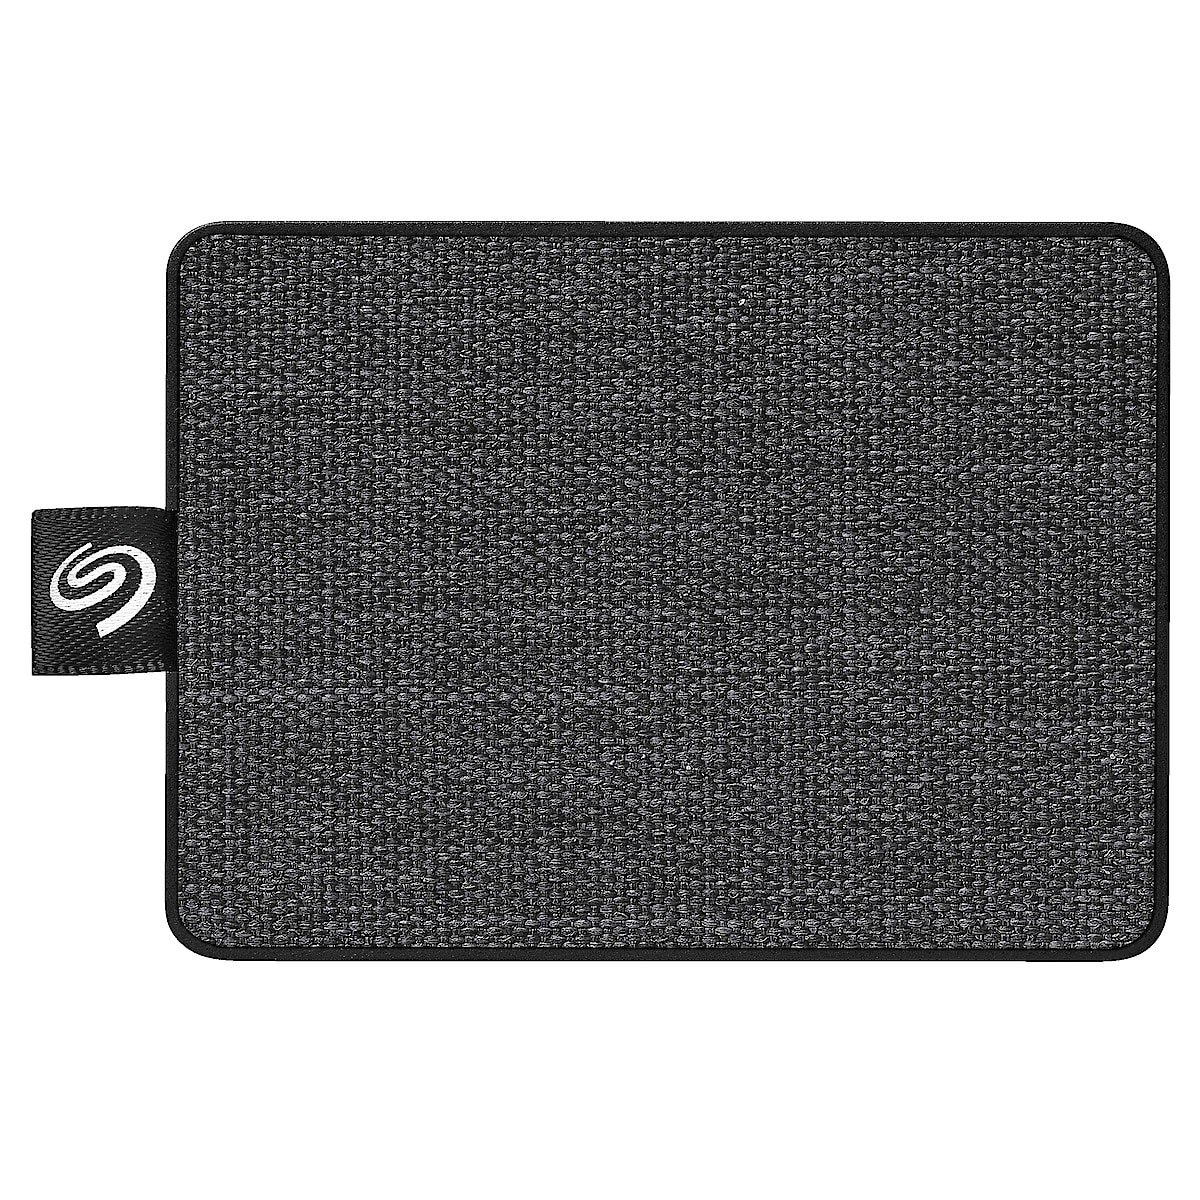 Seagate One Touch SSD 500 GB Kovalevy